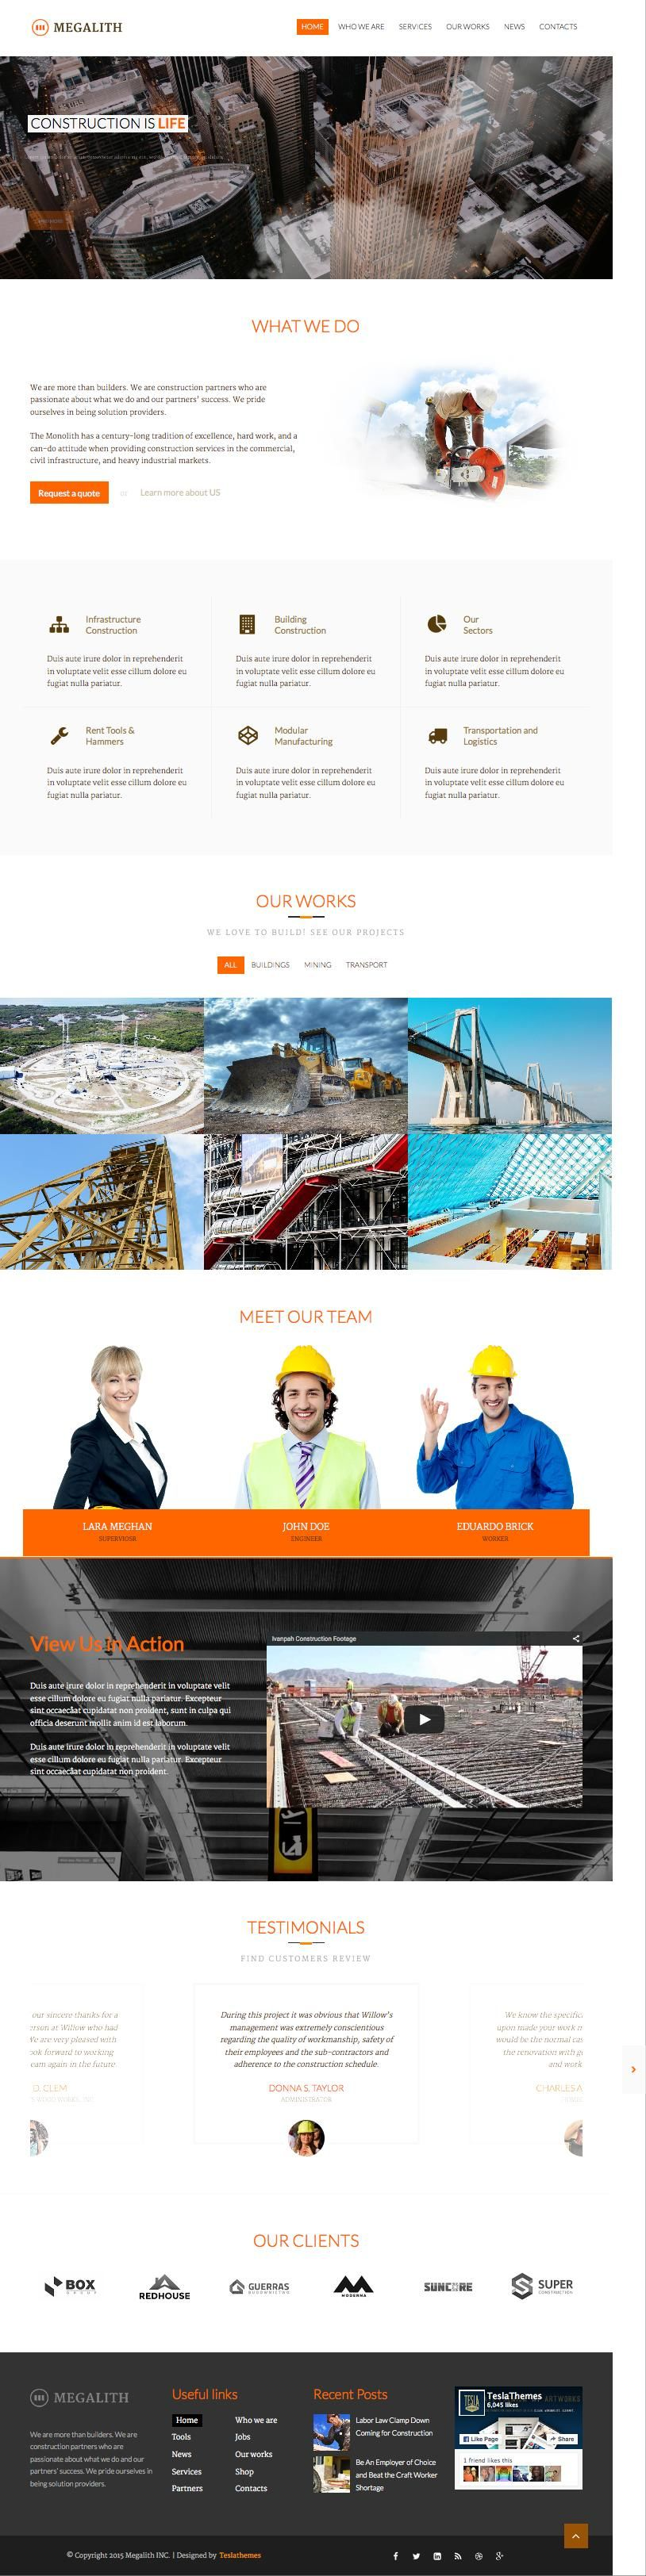 Megalith WordPress Architecture & Civil Engineering Theme